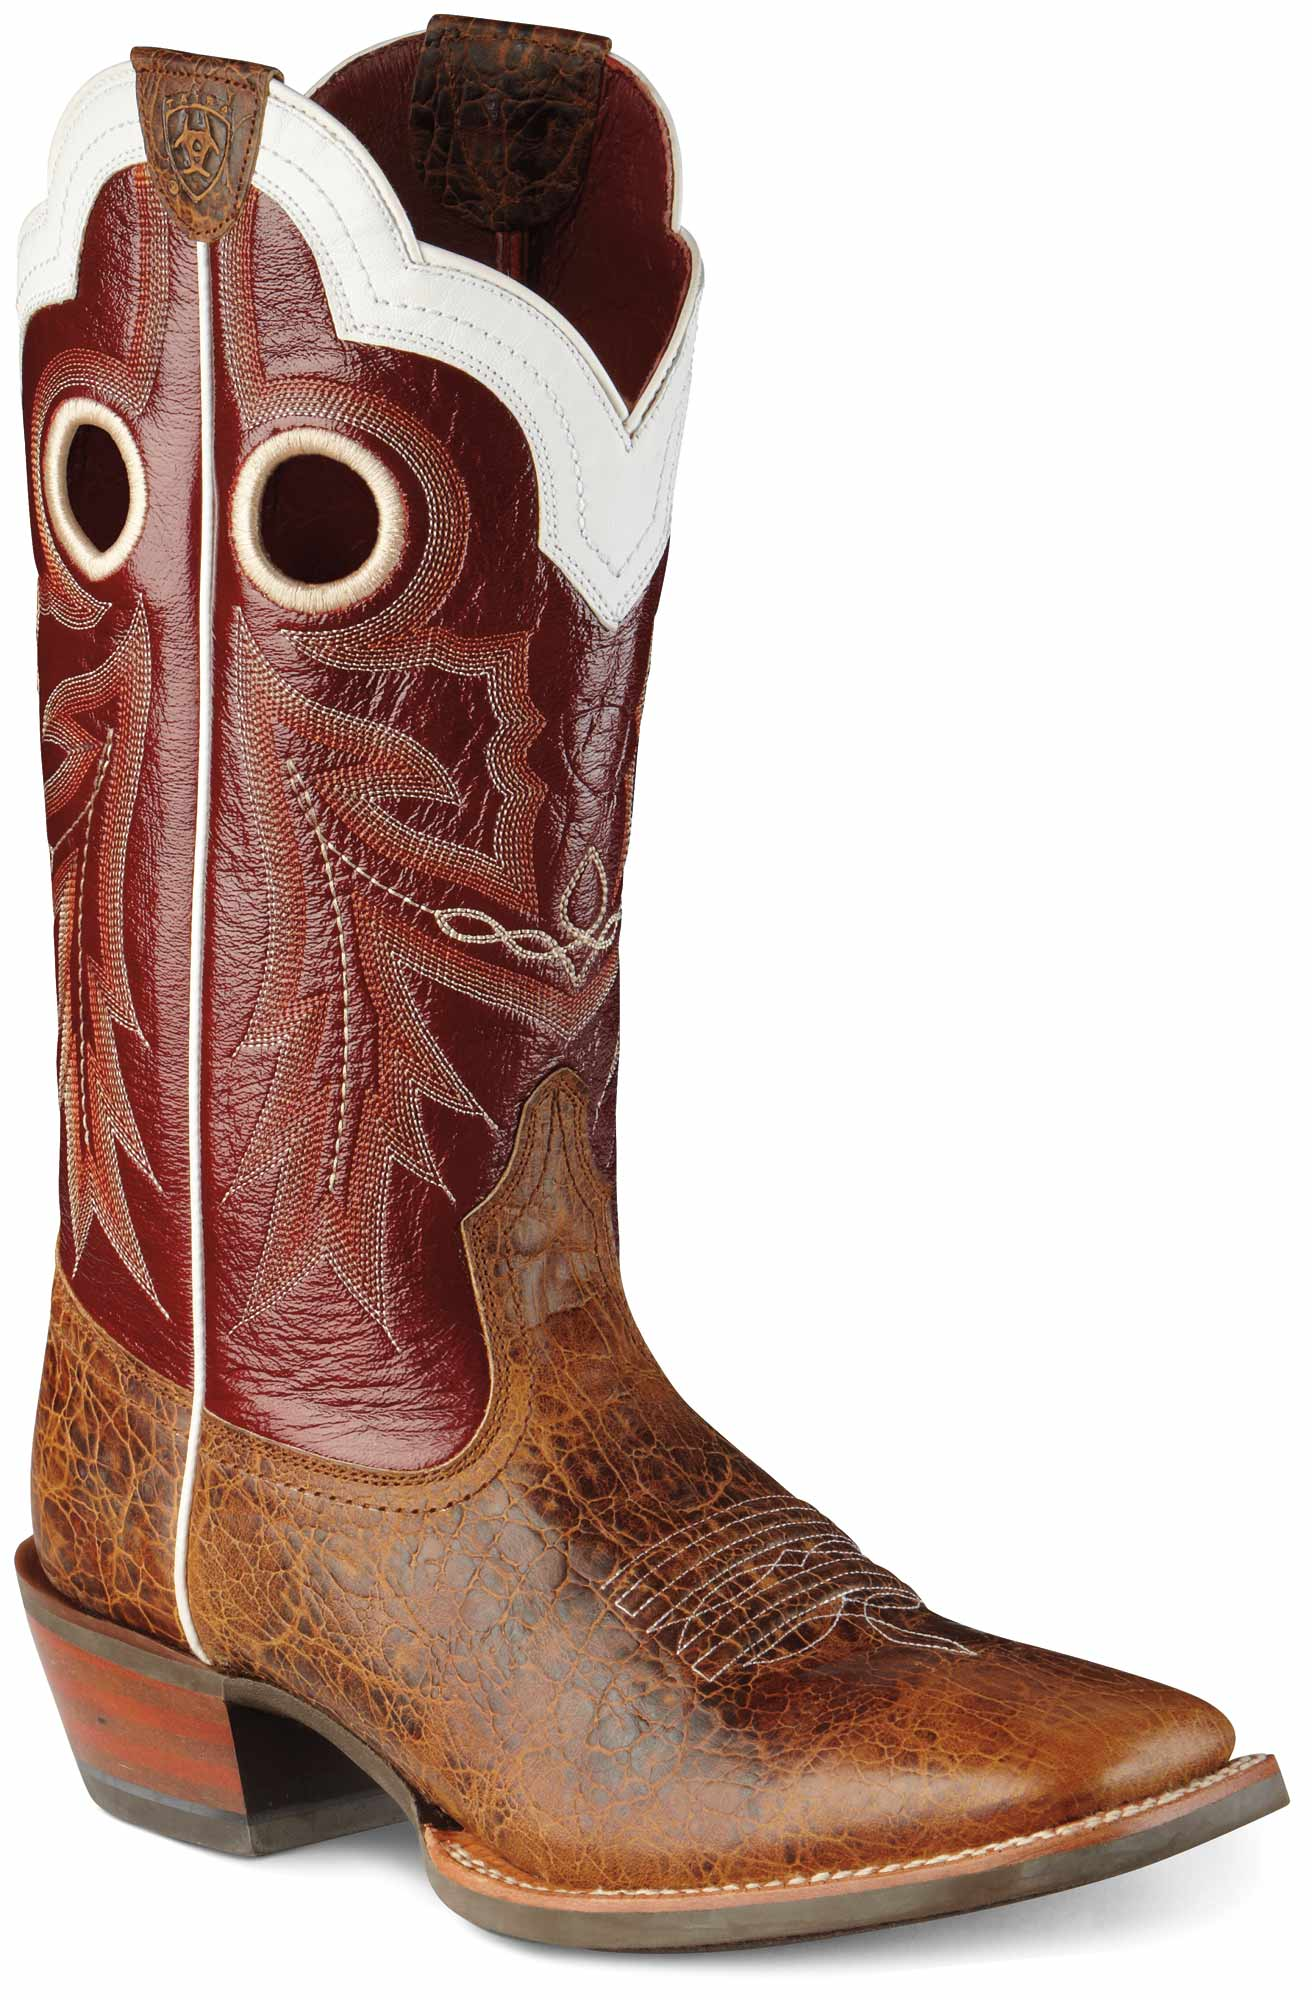 c3ff87aa486 Ariat Western Boots Mens Wildstock Adobe Clay Foot with Red Light Upper